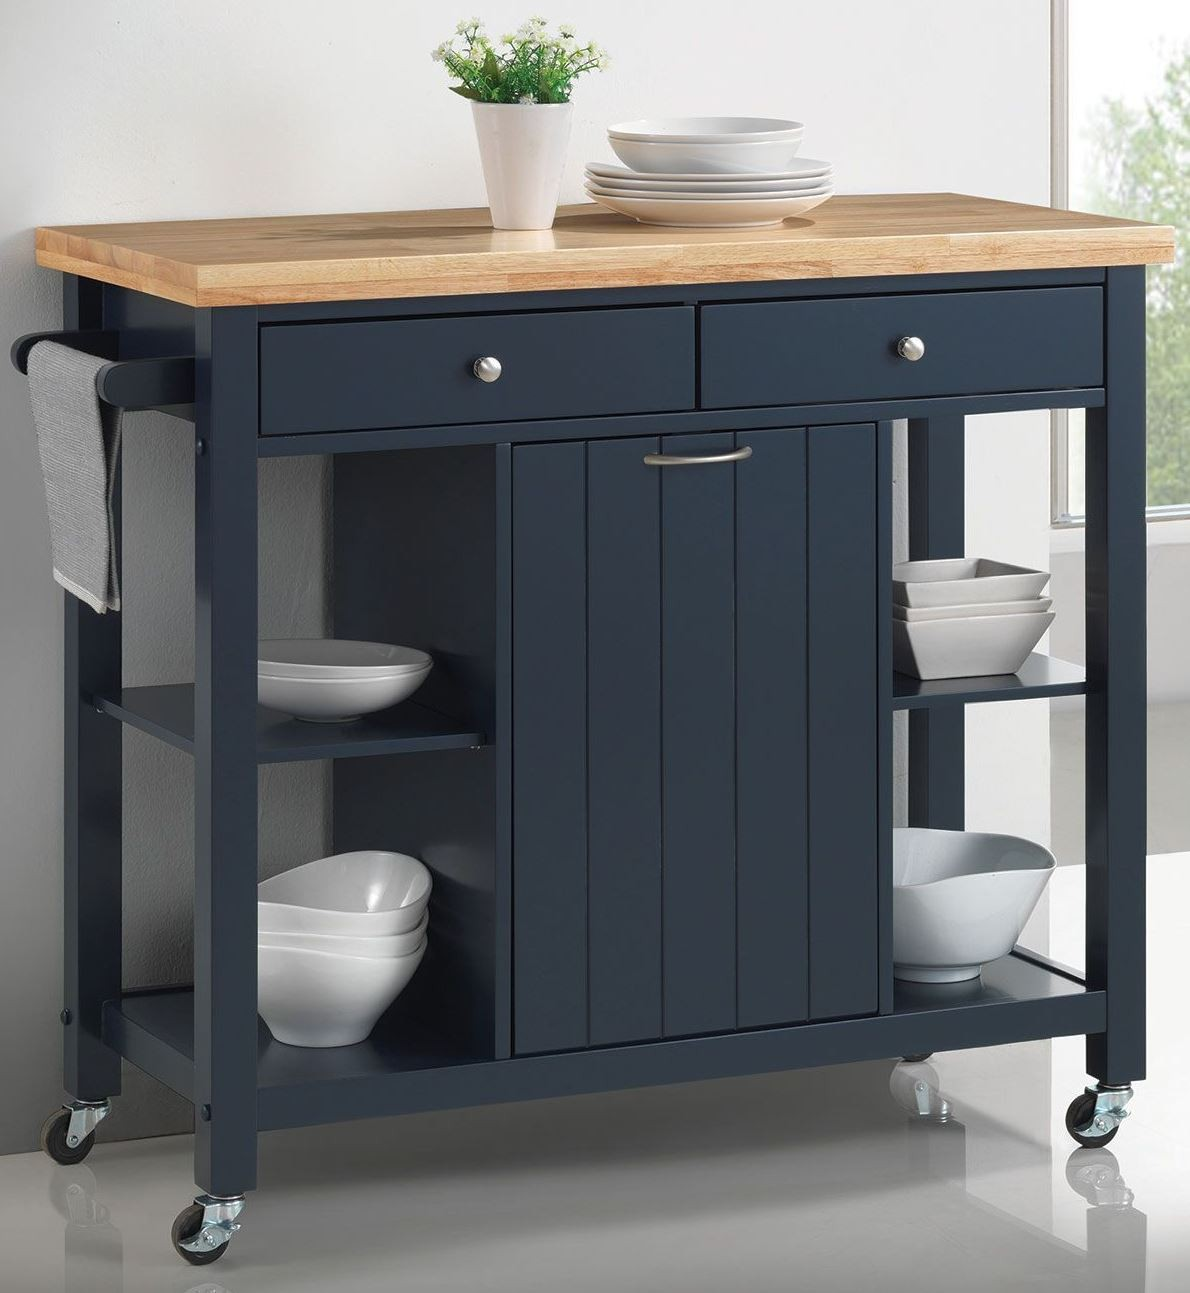 41 Quot Natural And Navy Blue Kitchen Cart 102675 Coaster